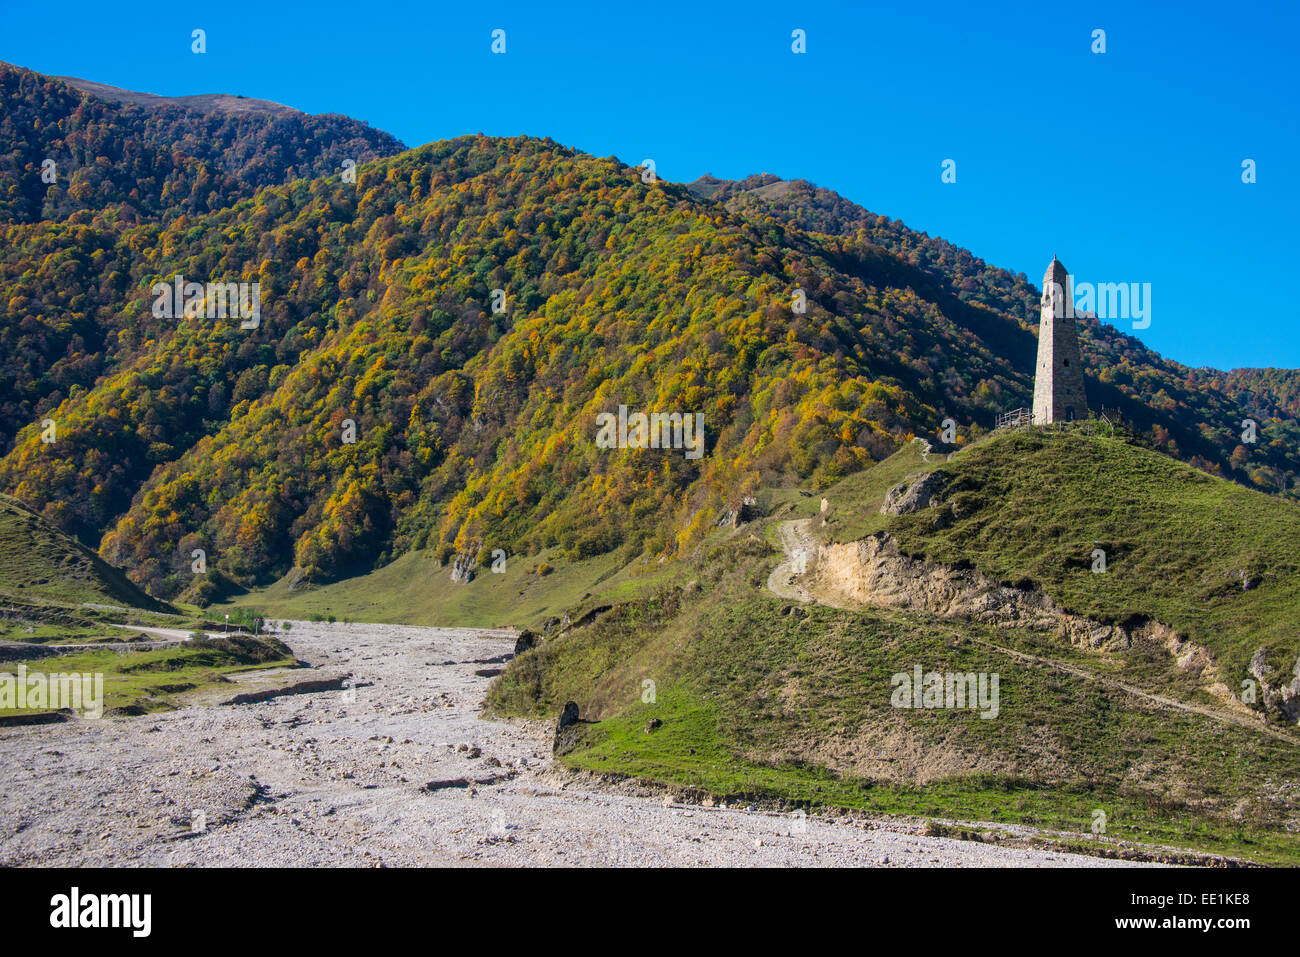 Watchtower in the Chechen Mountains, Chechnya, Caucasus, Russia, Europe - Stock Image